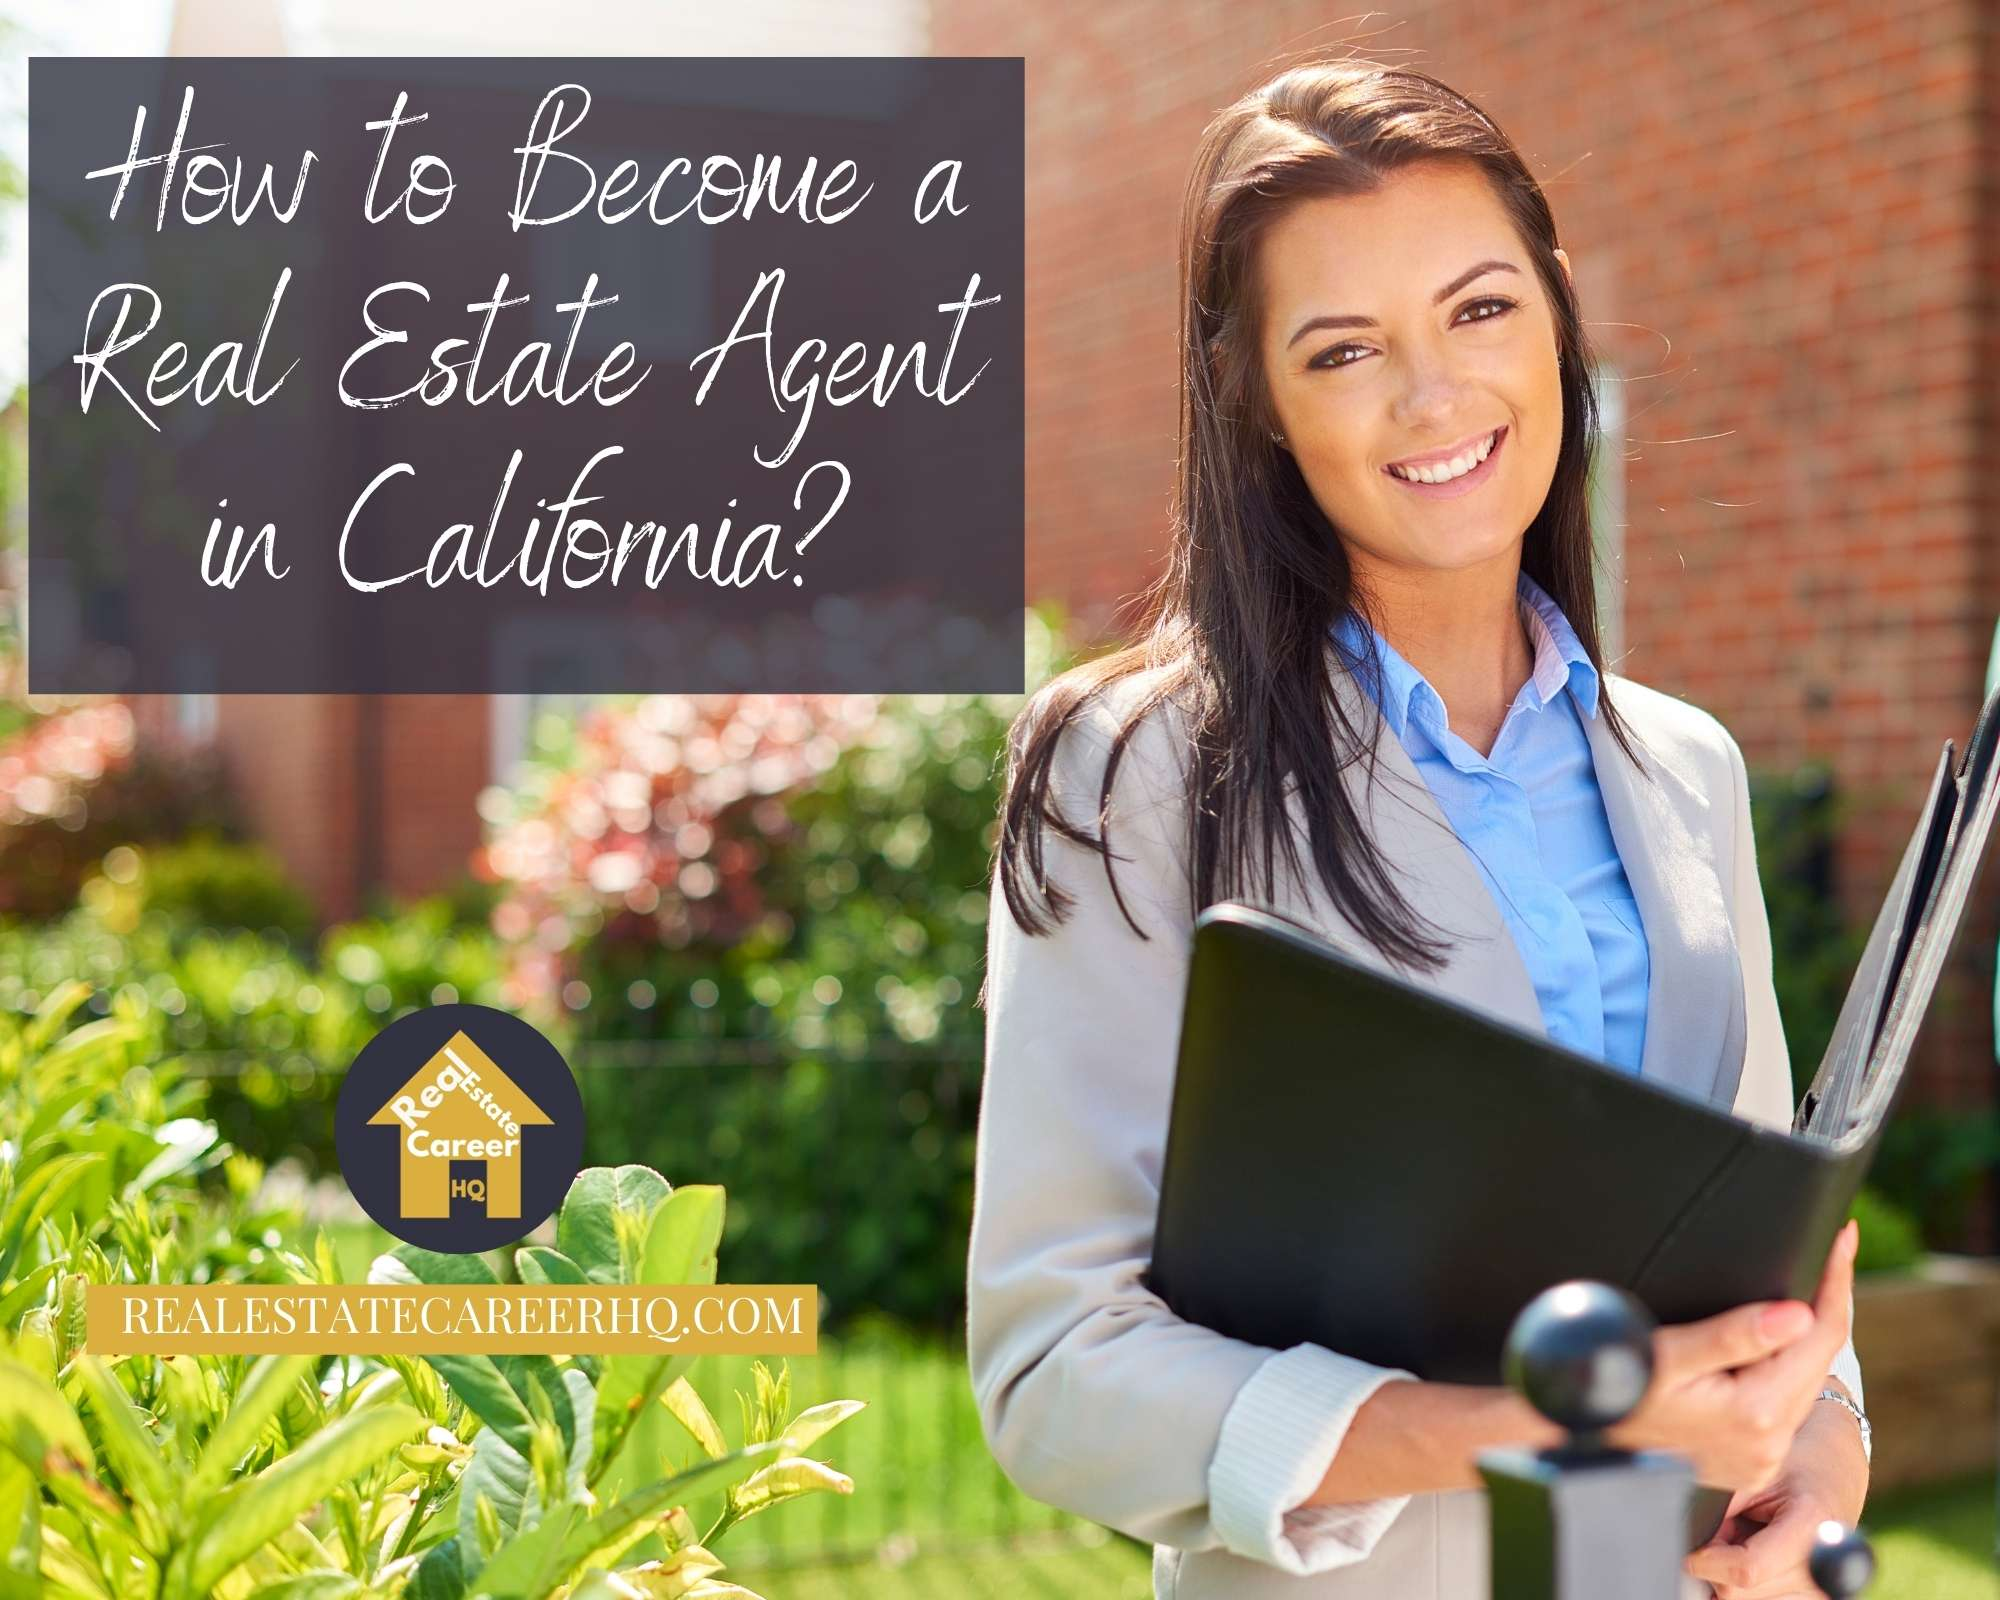 How to become a real estate agent in California?